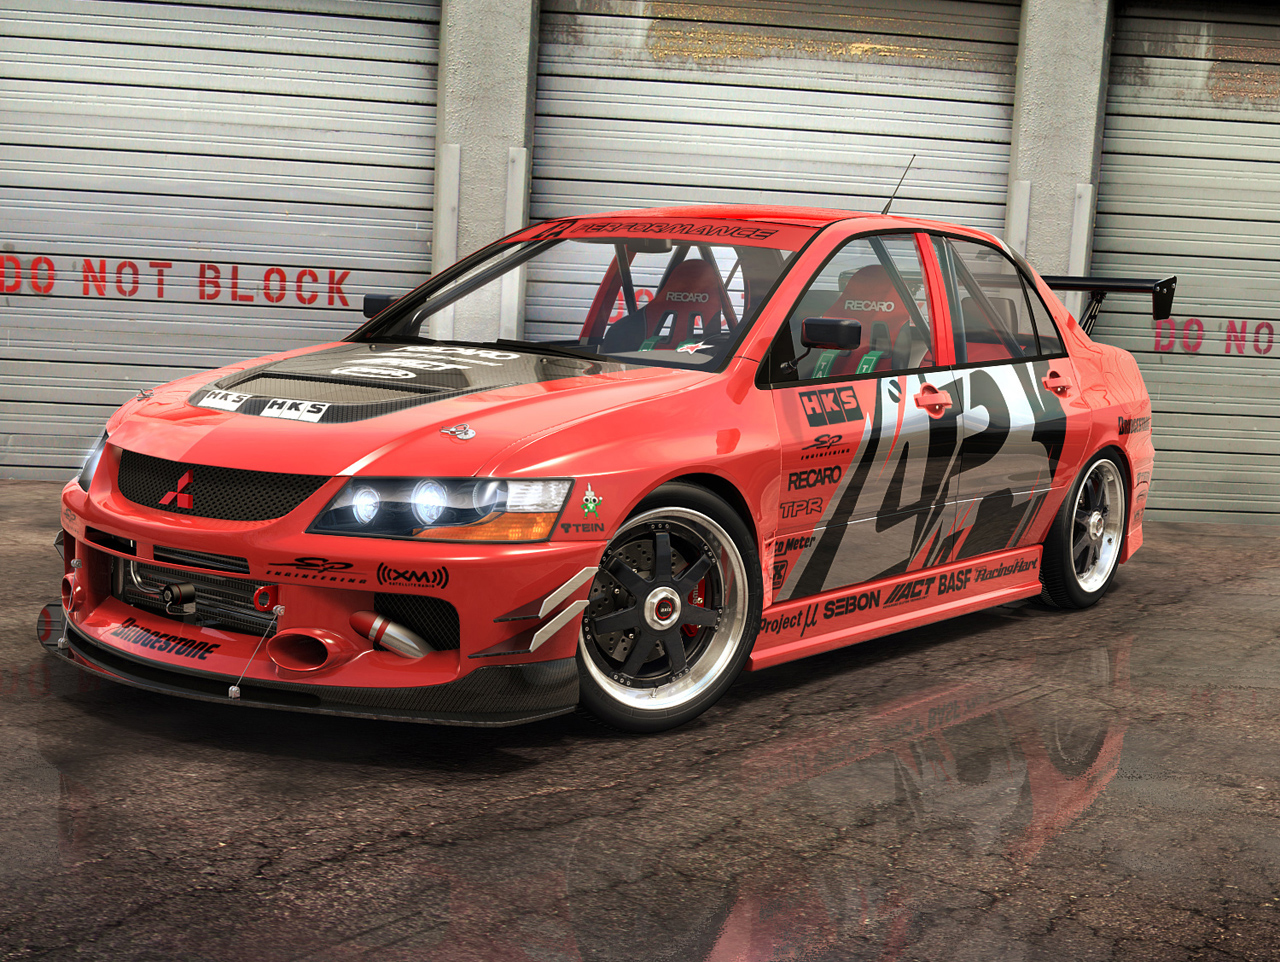 Superb 2006 MITSUBISHI LANCER EVOLUTION   Image #16